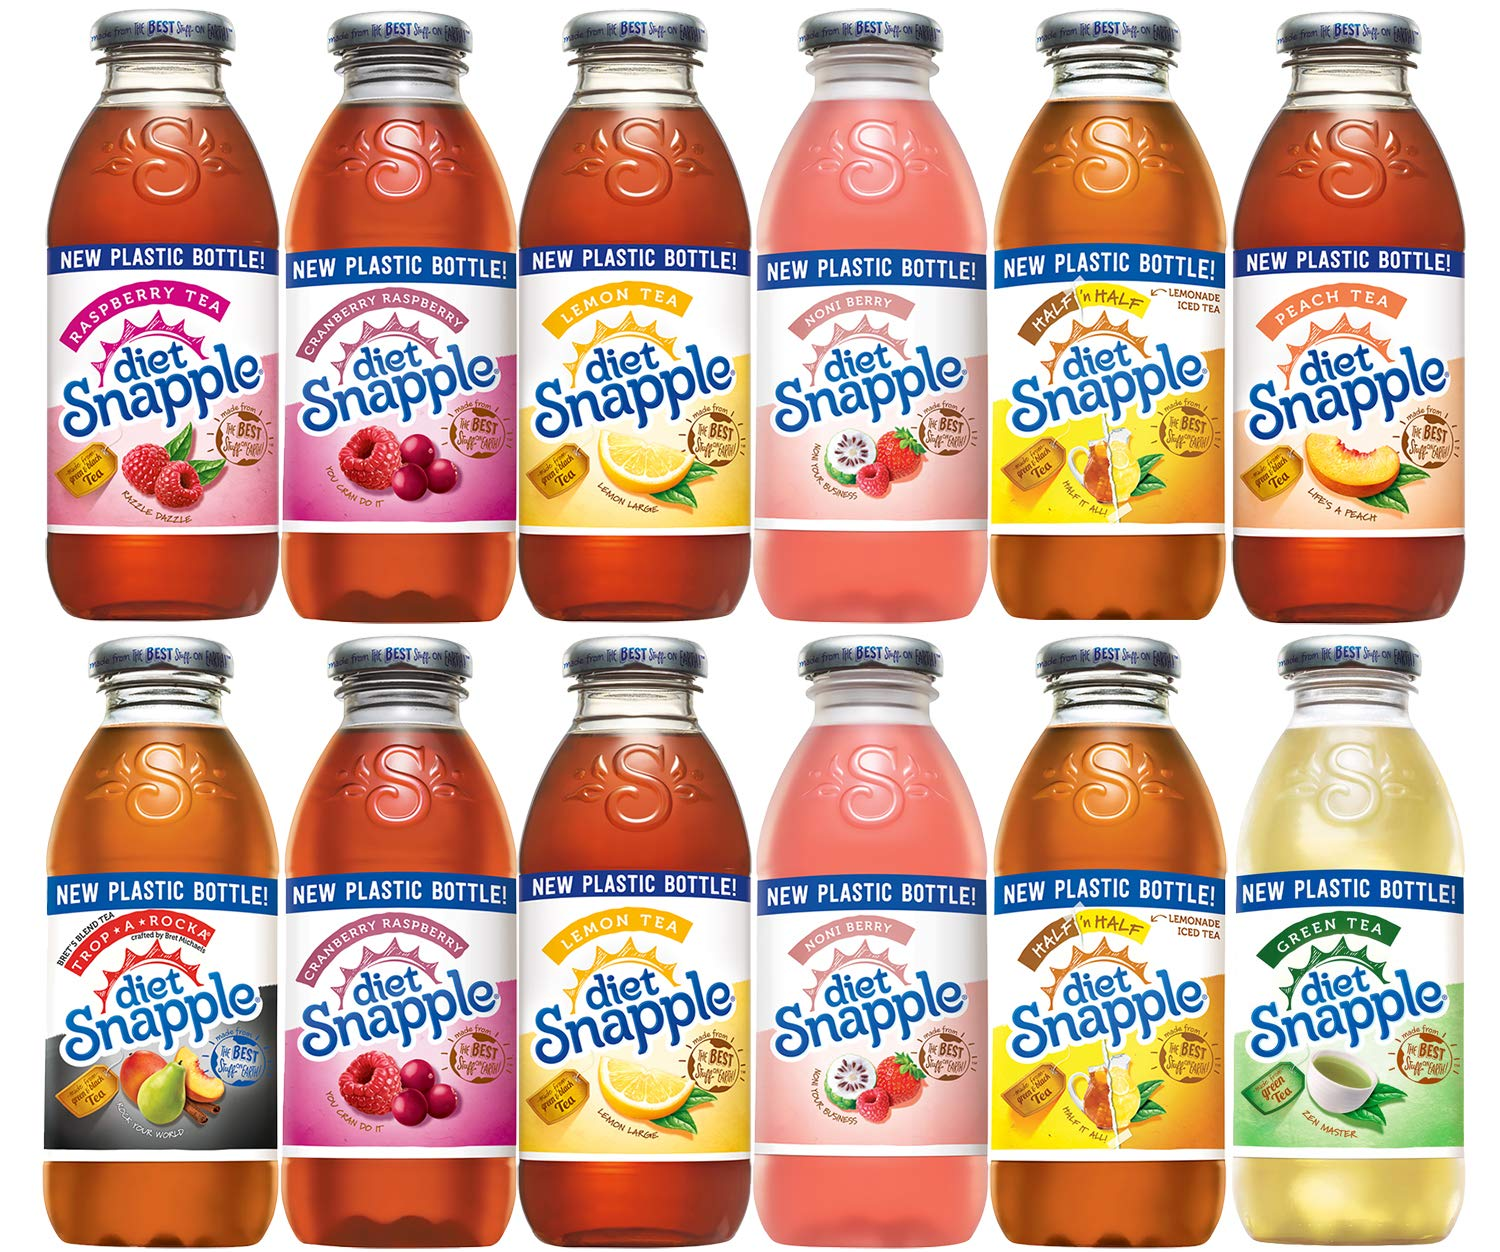 Diet Snapple Variety Pack, 16 fl oz (12 Plastic Bottles)